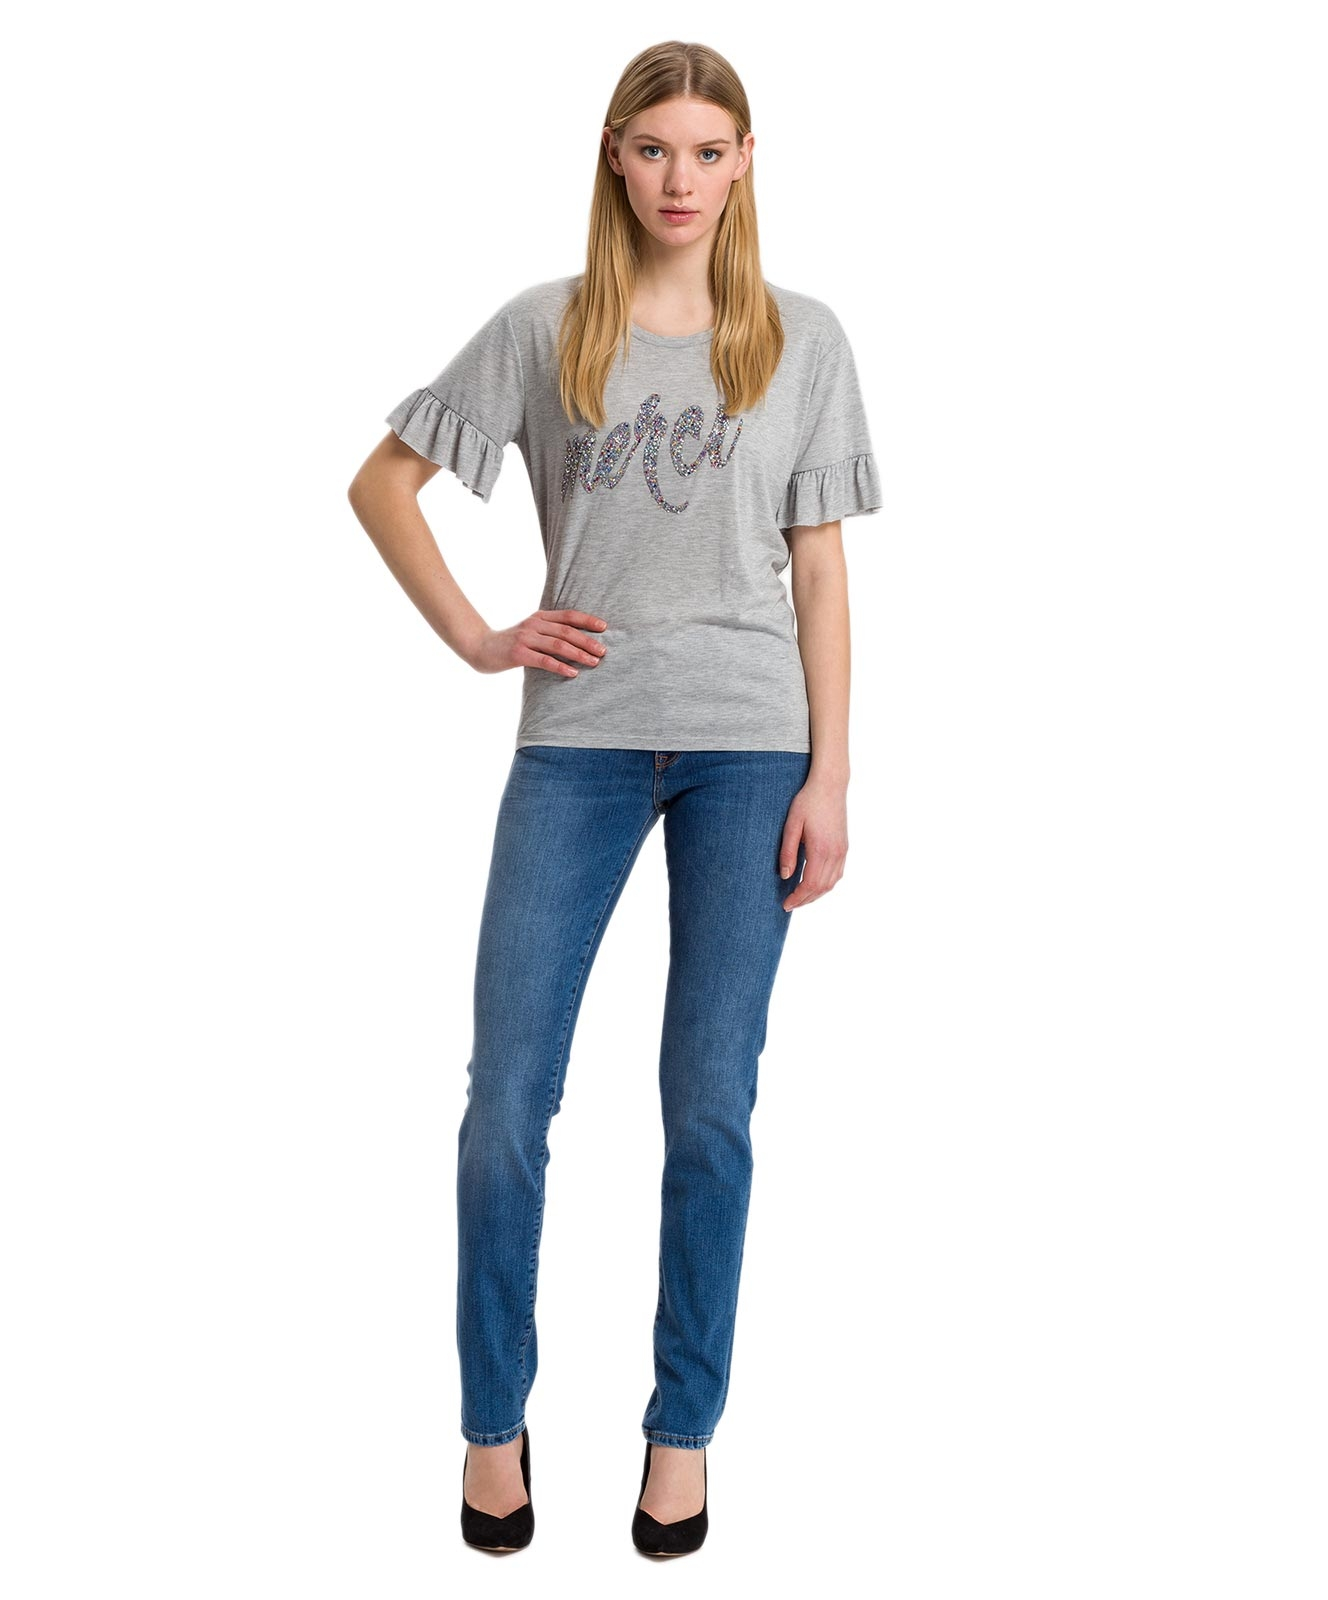 Hosen - Cross Mom Jeans Anya in Soft Blue Used  - Onlineshop Jeans Meile